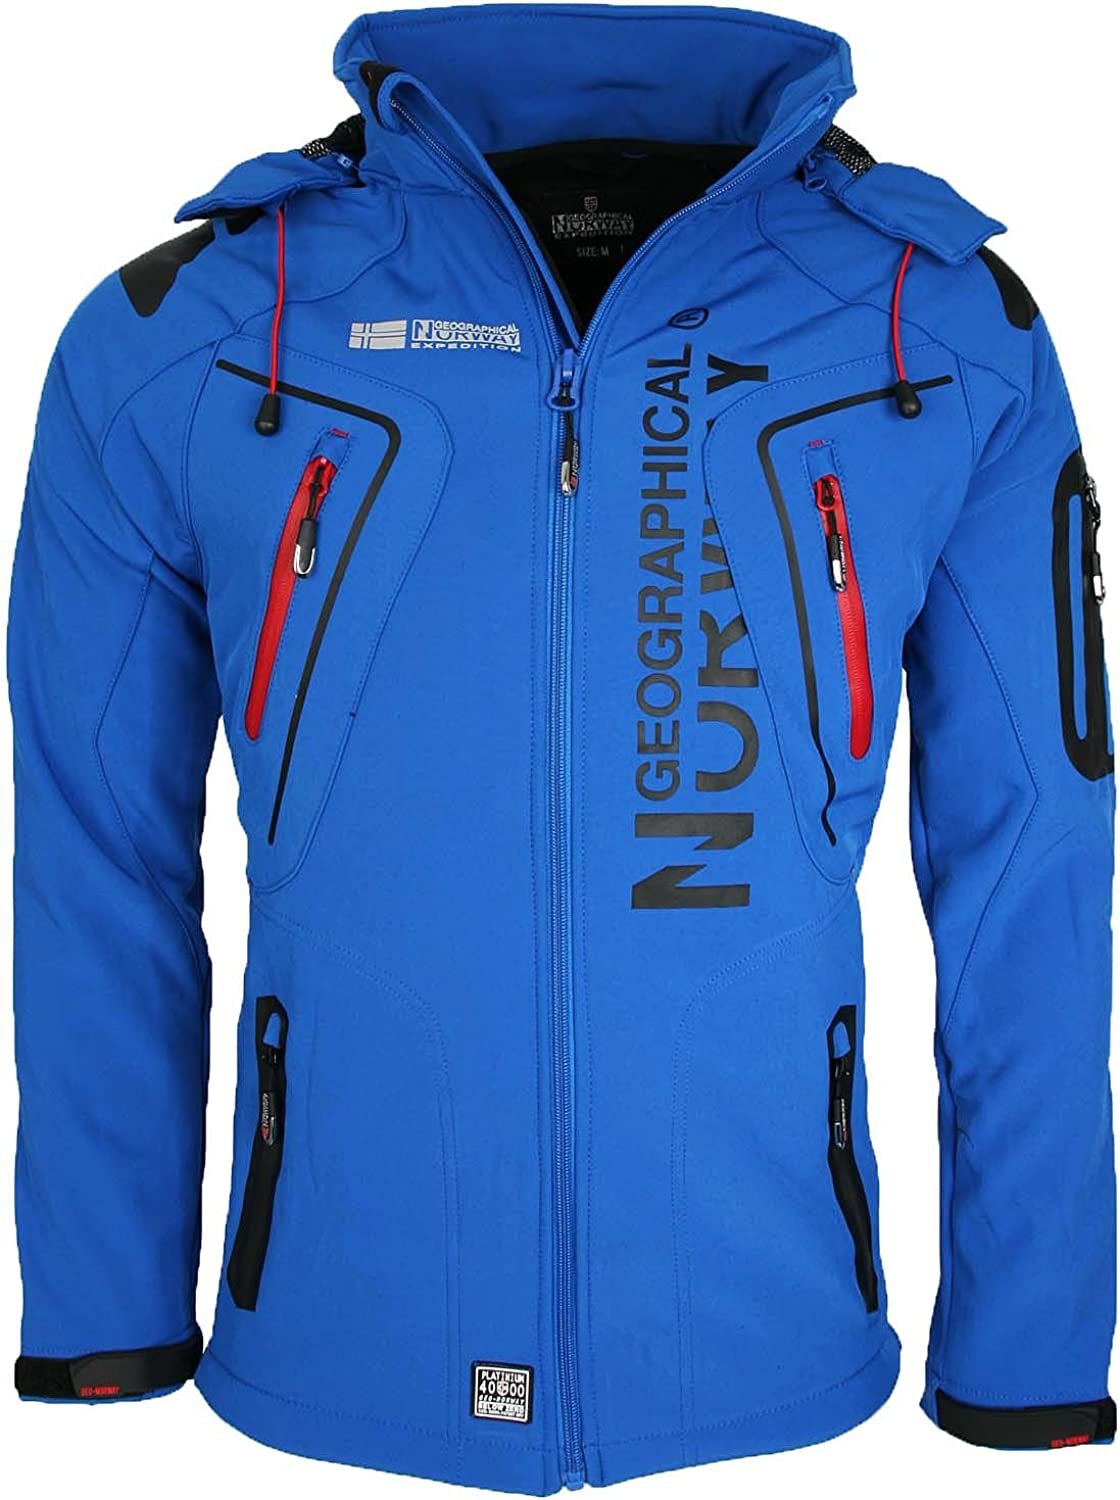 Geographical Norway blue